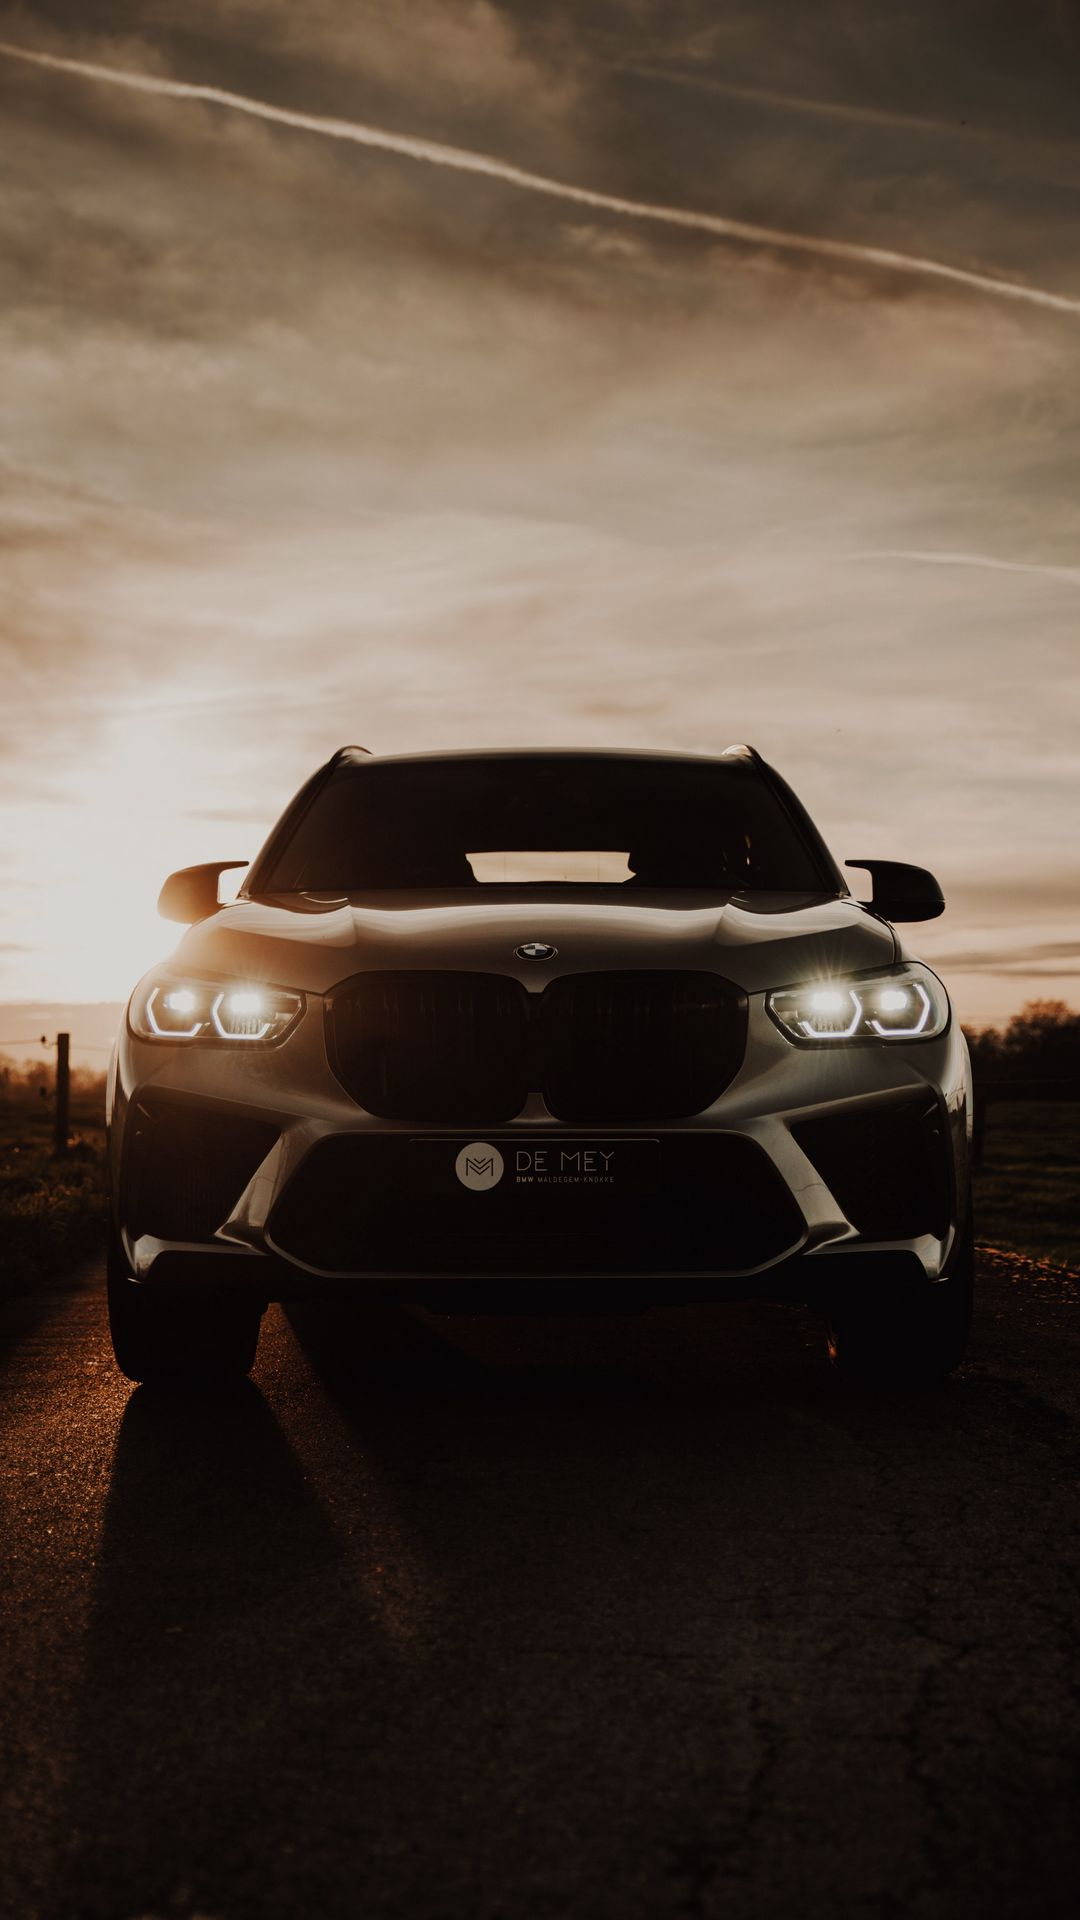 BMW X5 Series Wallpapers Free Download